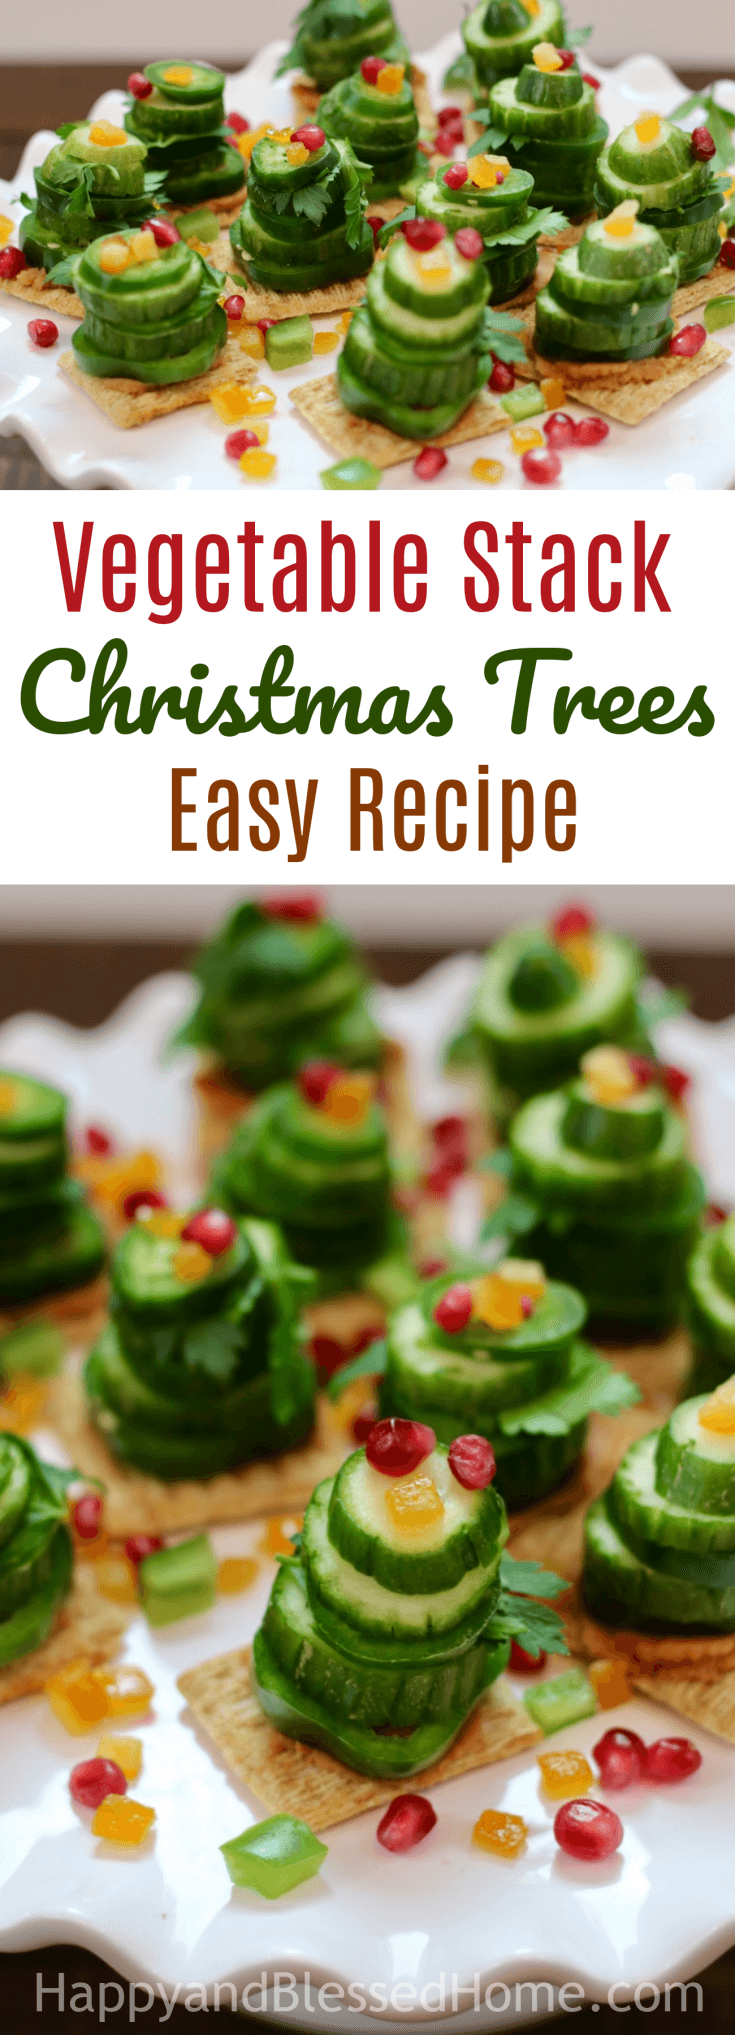 Easy Recipe for Vegetable Stack Christmas Trees - the perfect Holiday Party Appetizer